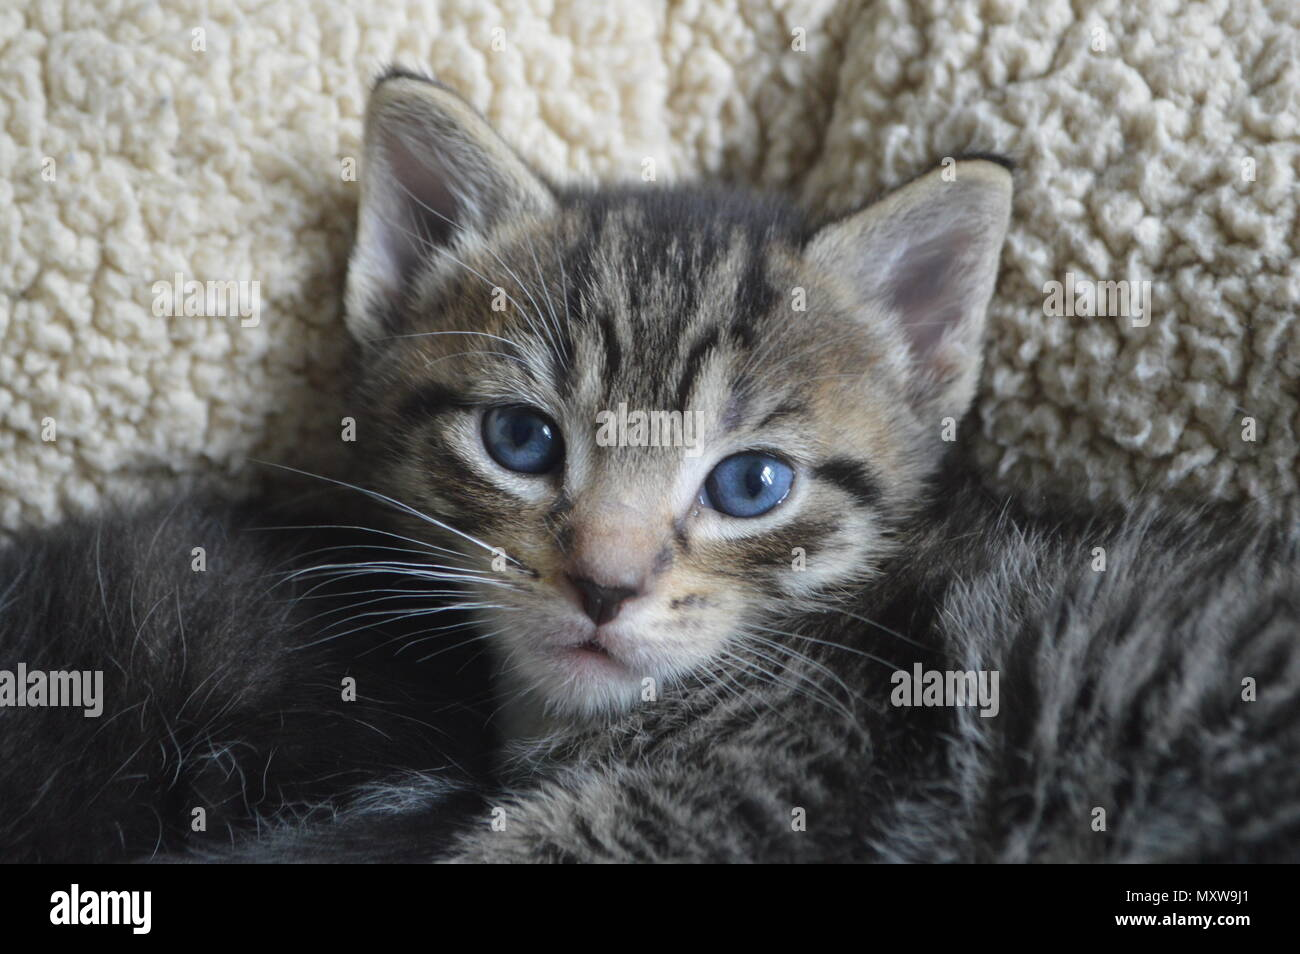 Tabby Kitten With Blue Eyes 6 Weeks Old Kitten Stock Photo Alamy